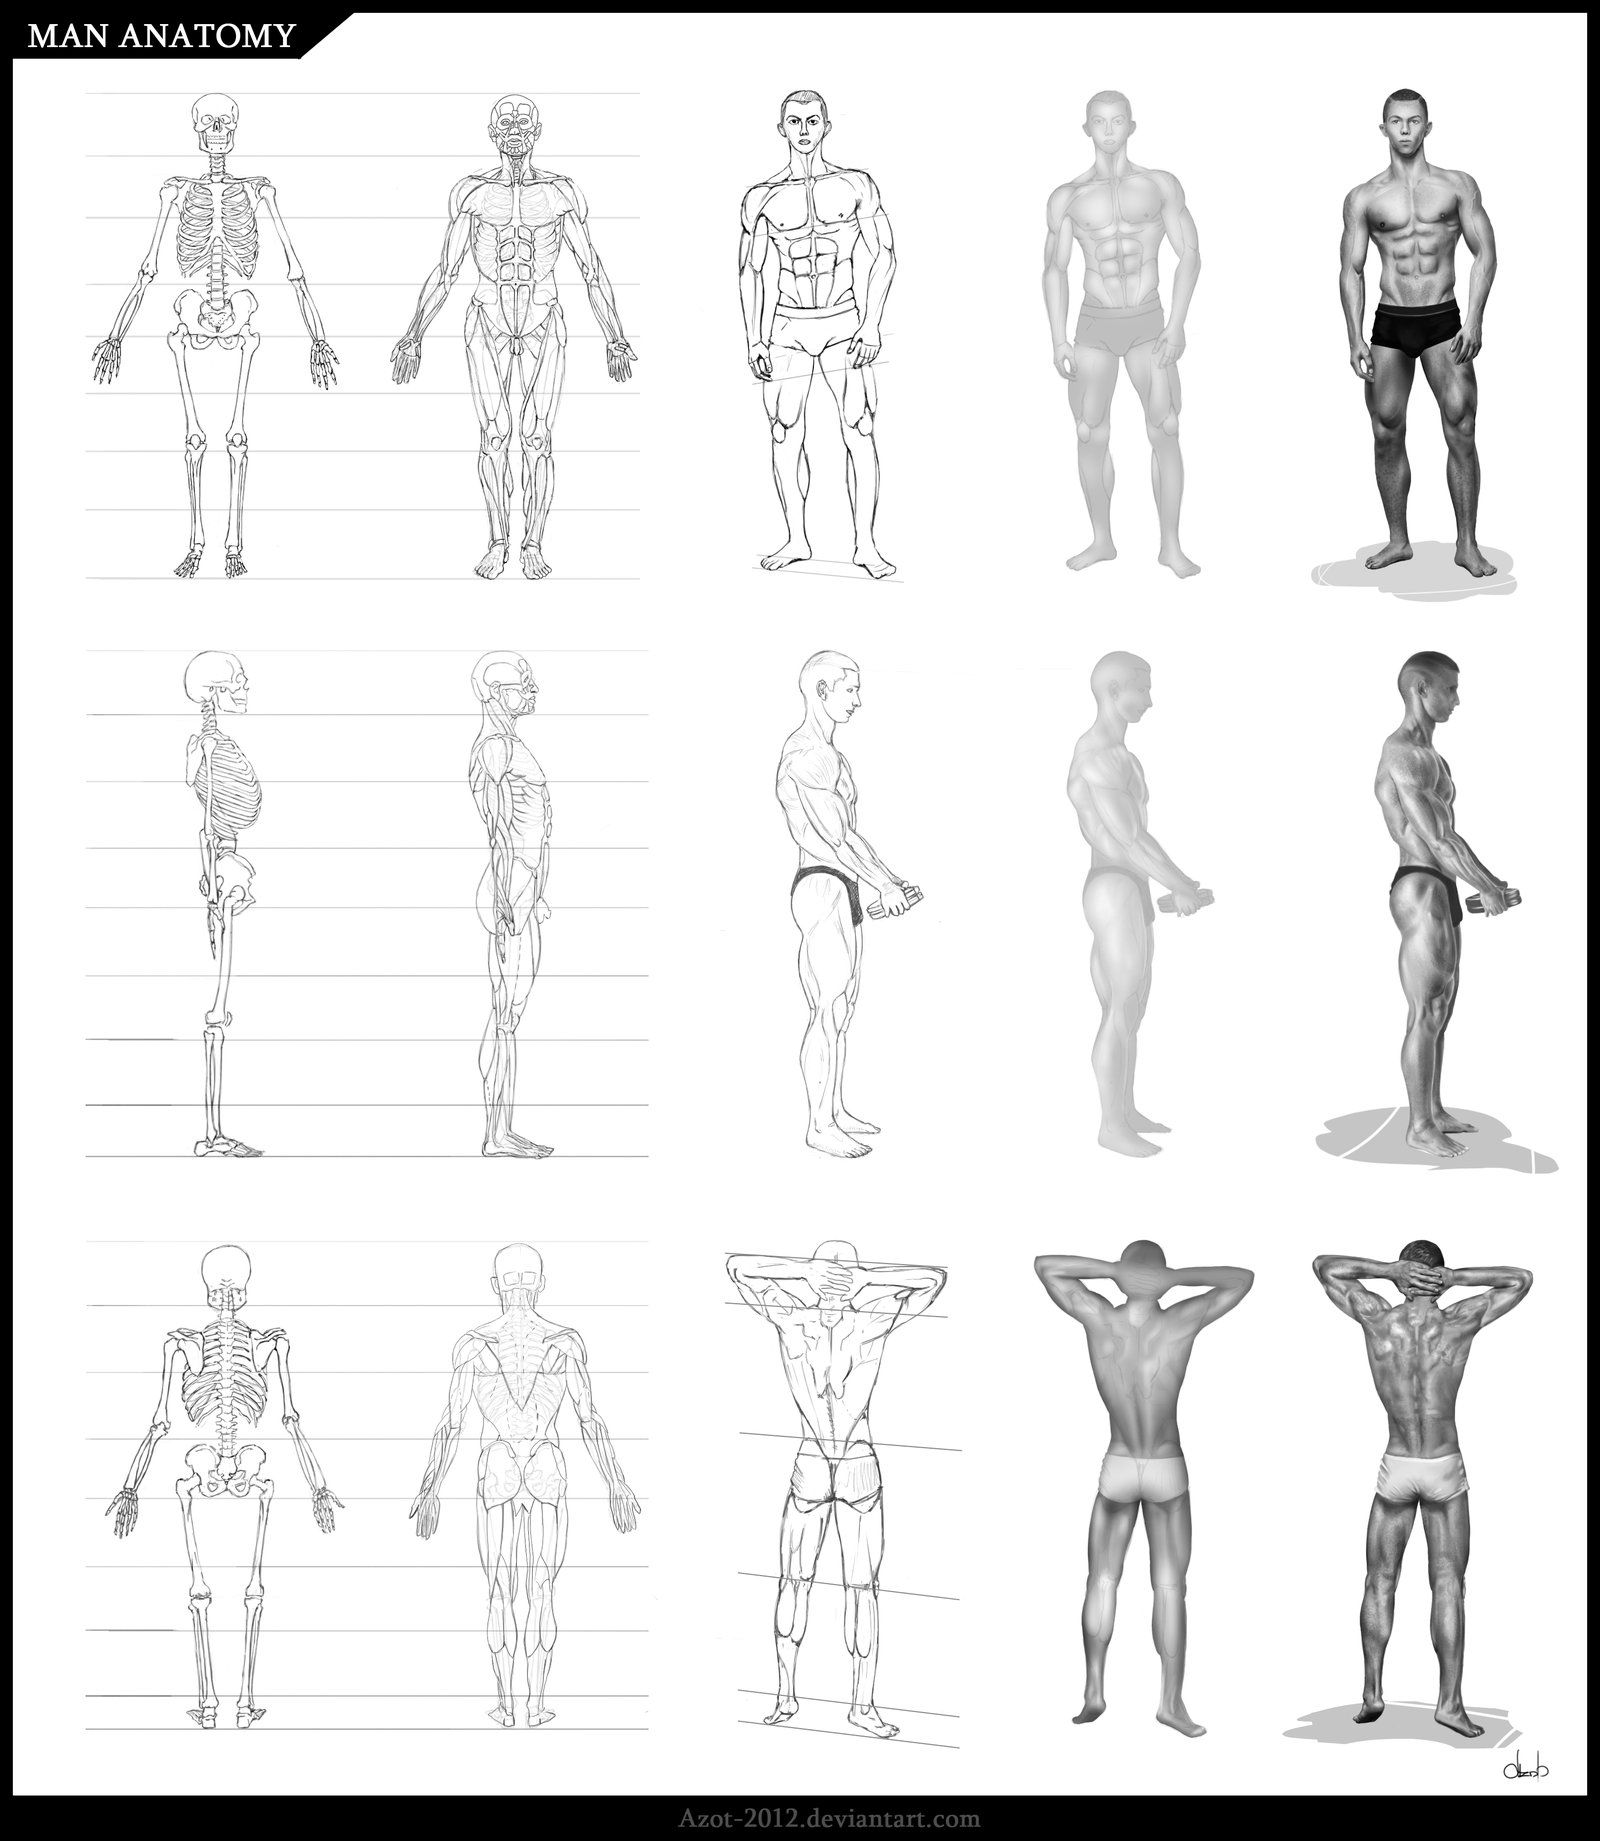 Man Anatomy by Azot2016 on DeviantArt | DRAWING HUMAN ANATOMY ...